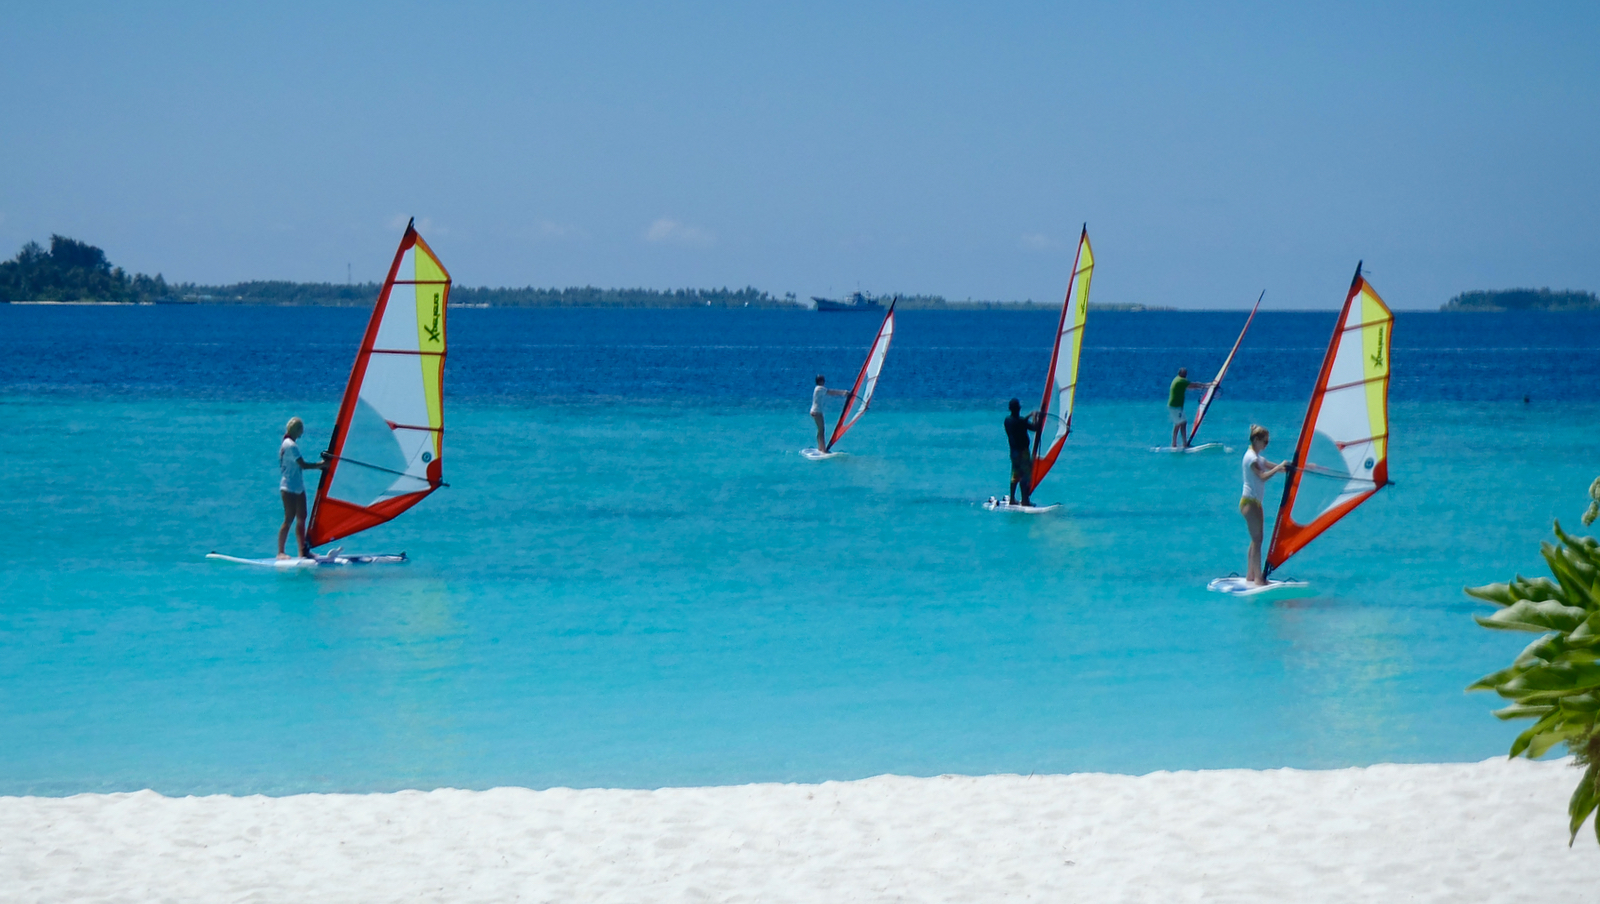 Learning Steps in a Windsurf Course